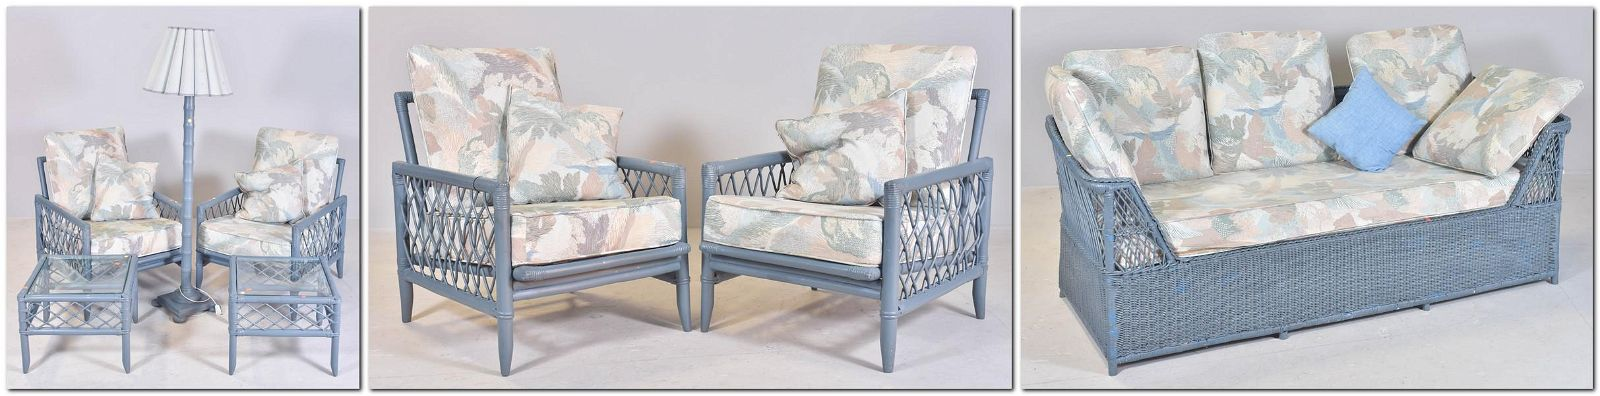 (6) pc Rattan and bamboo patio set